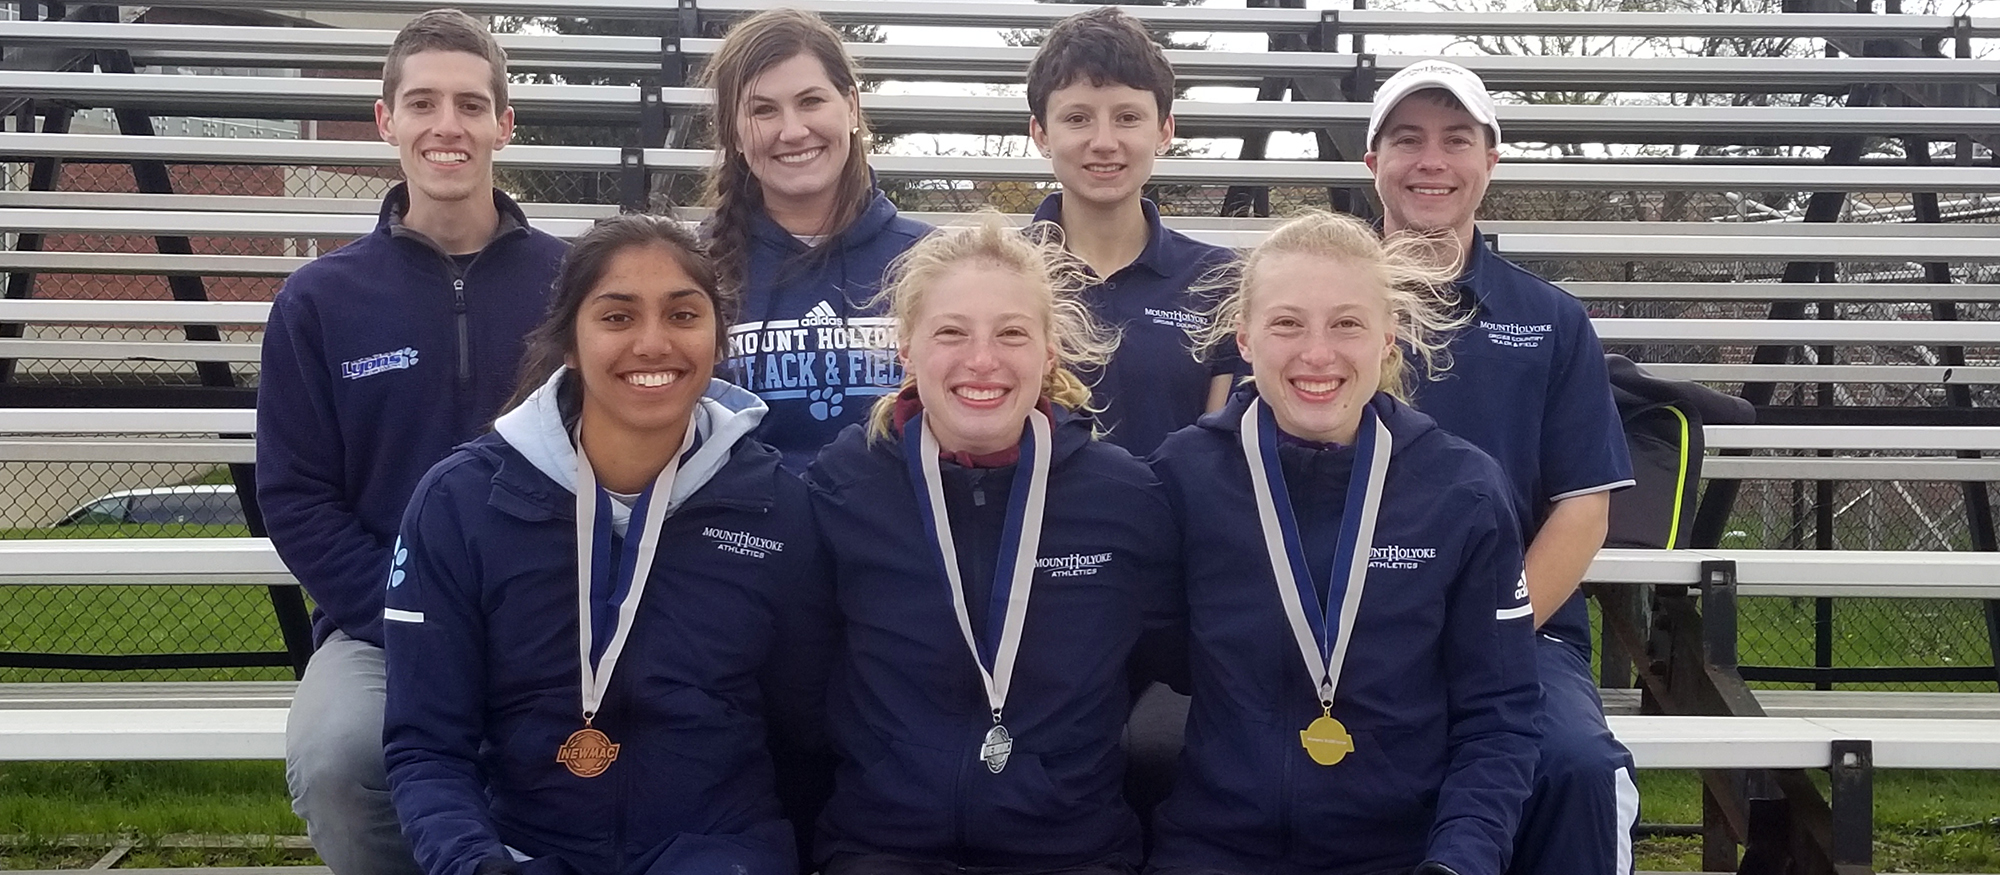 NEWMAC Medalists (Front Row) right to left: 10000m champion Hannah Rieders, 10000m runner-up Madeline Rieders, 1500m third place Simone Jacob. Back row featuring Mount Holyoke coaches.